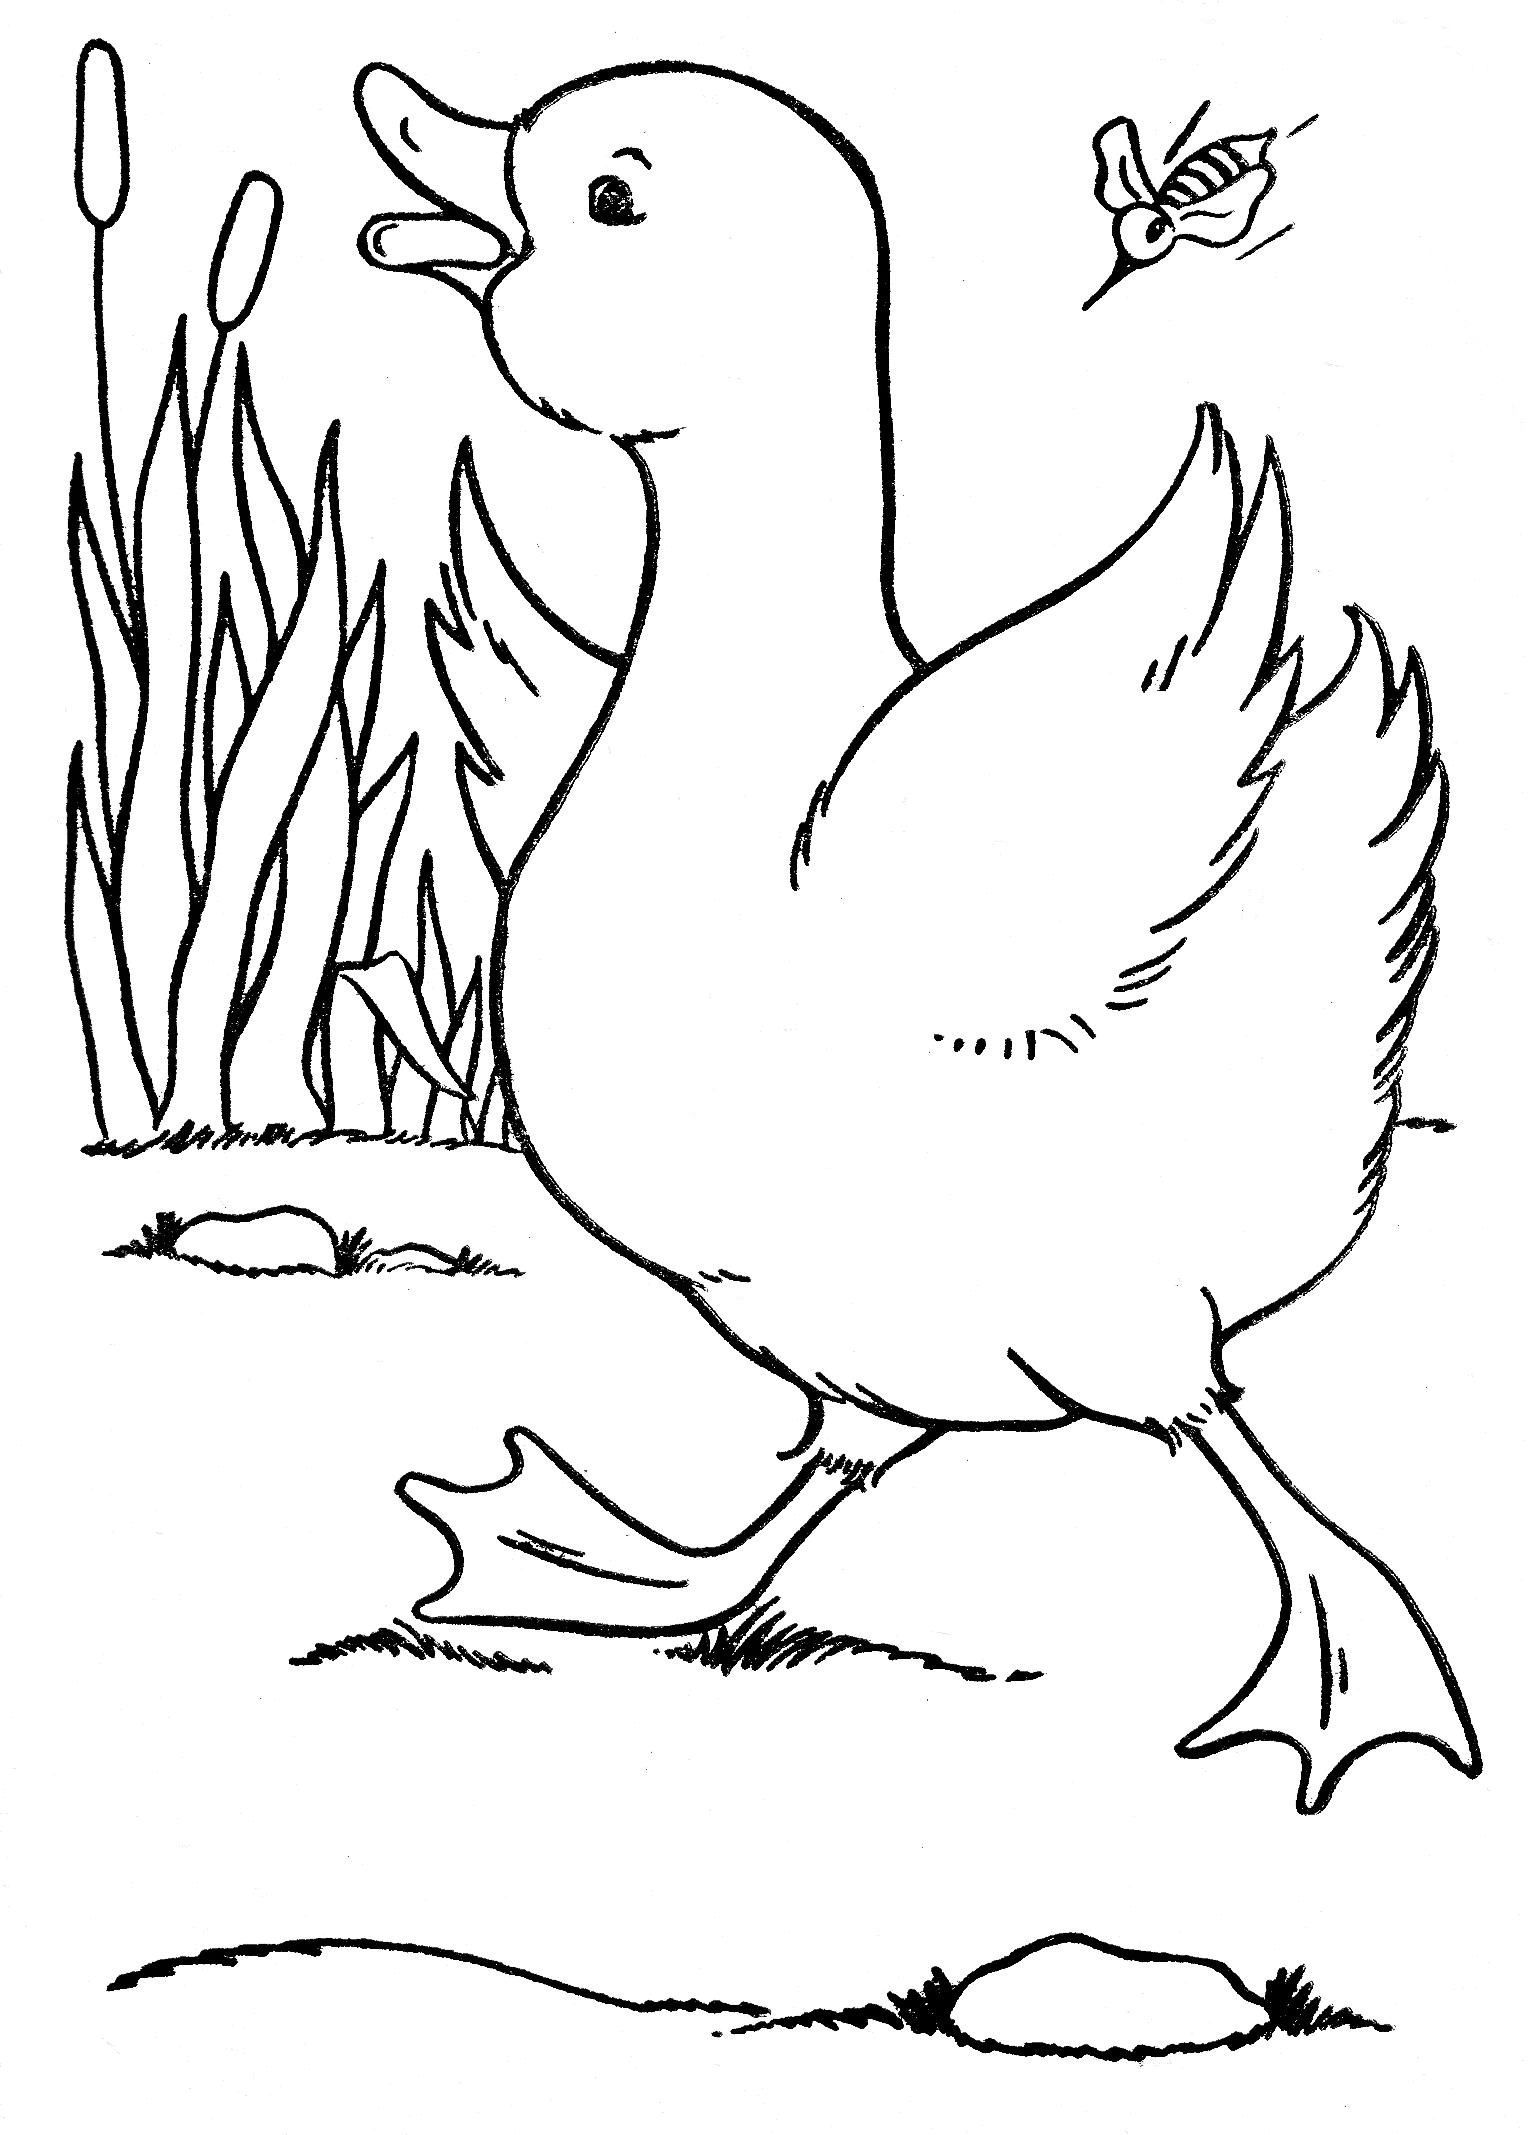 Lebron james cartoon coloring pages for Lebron james coloring pages